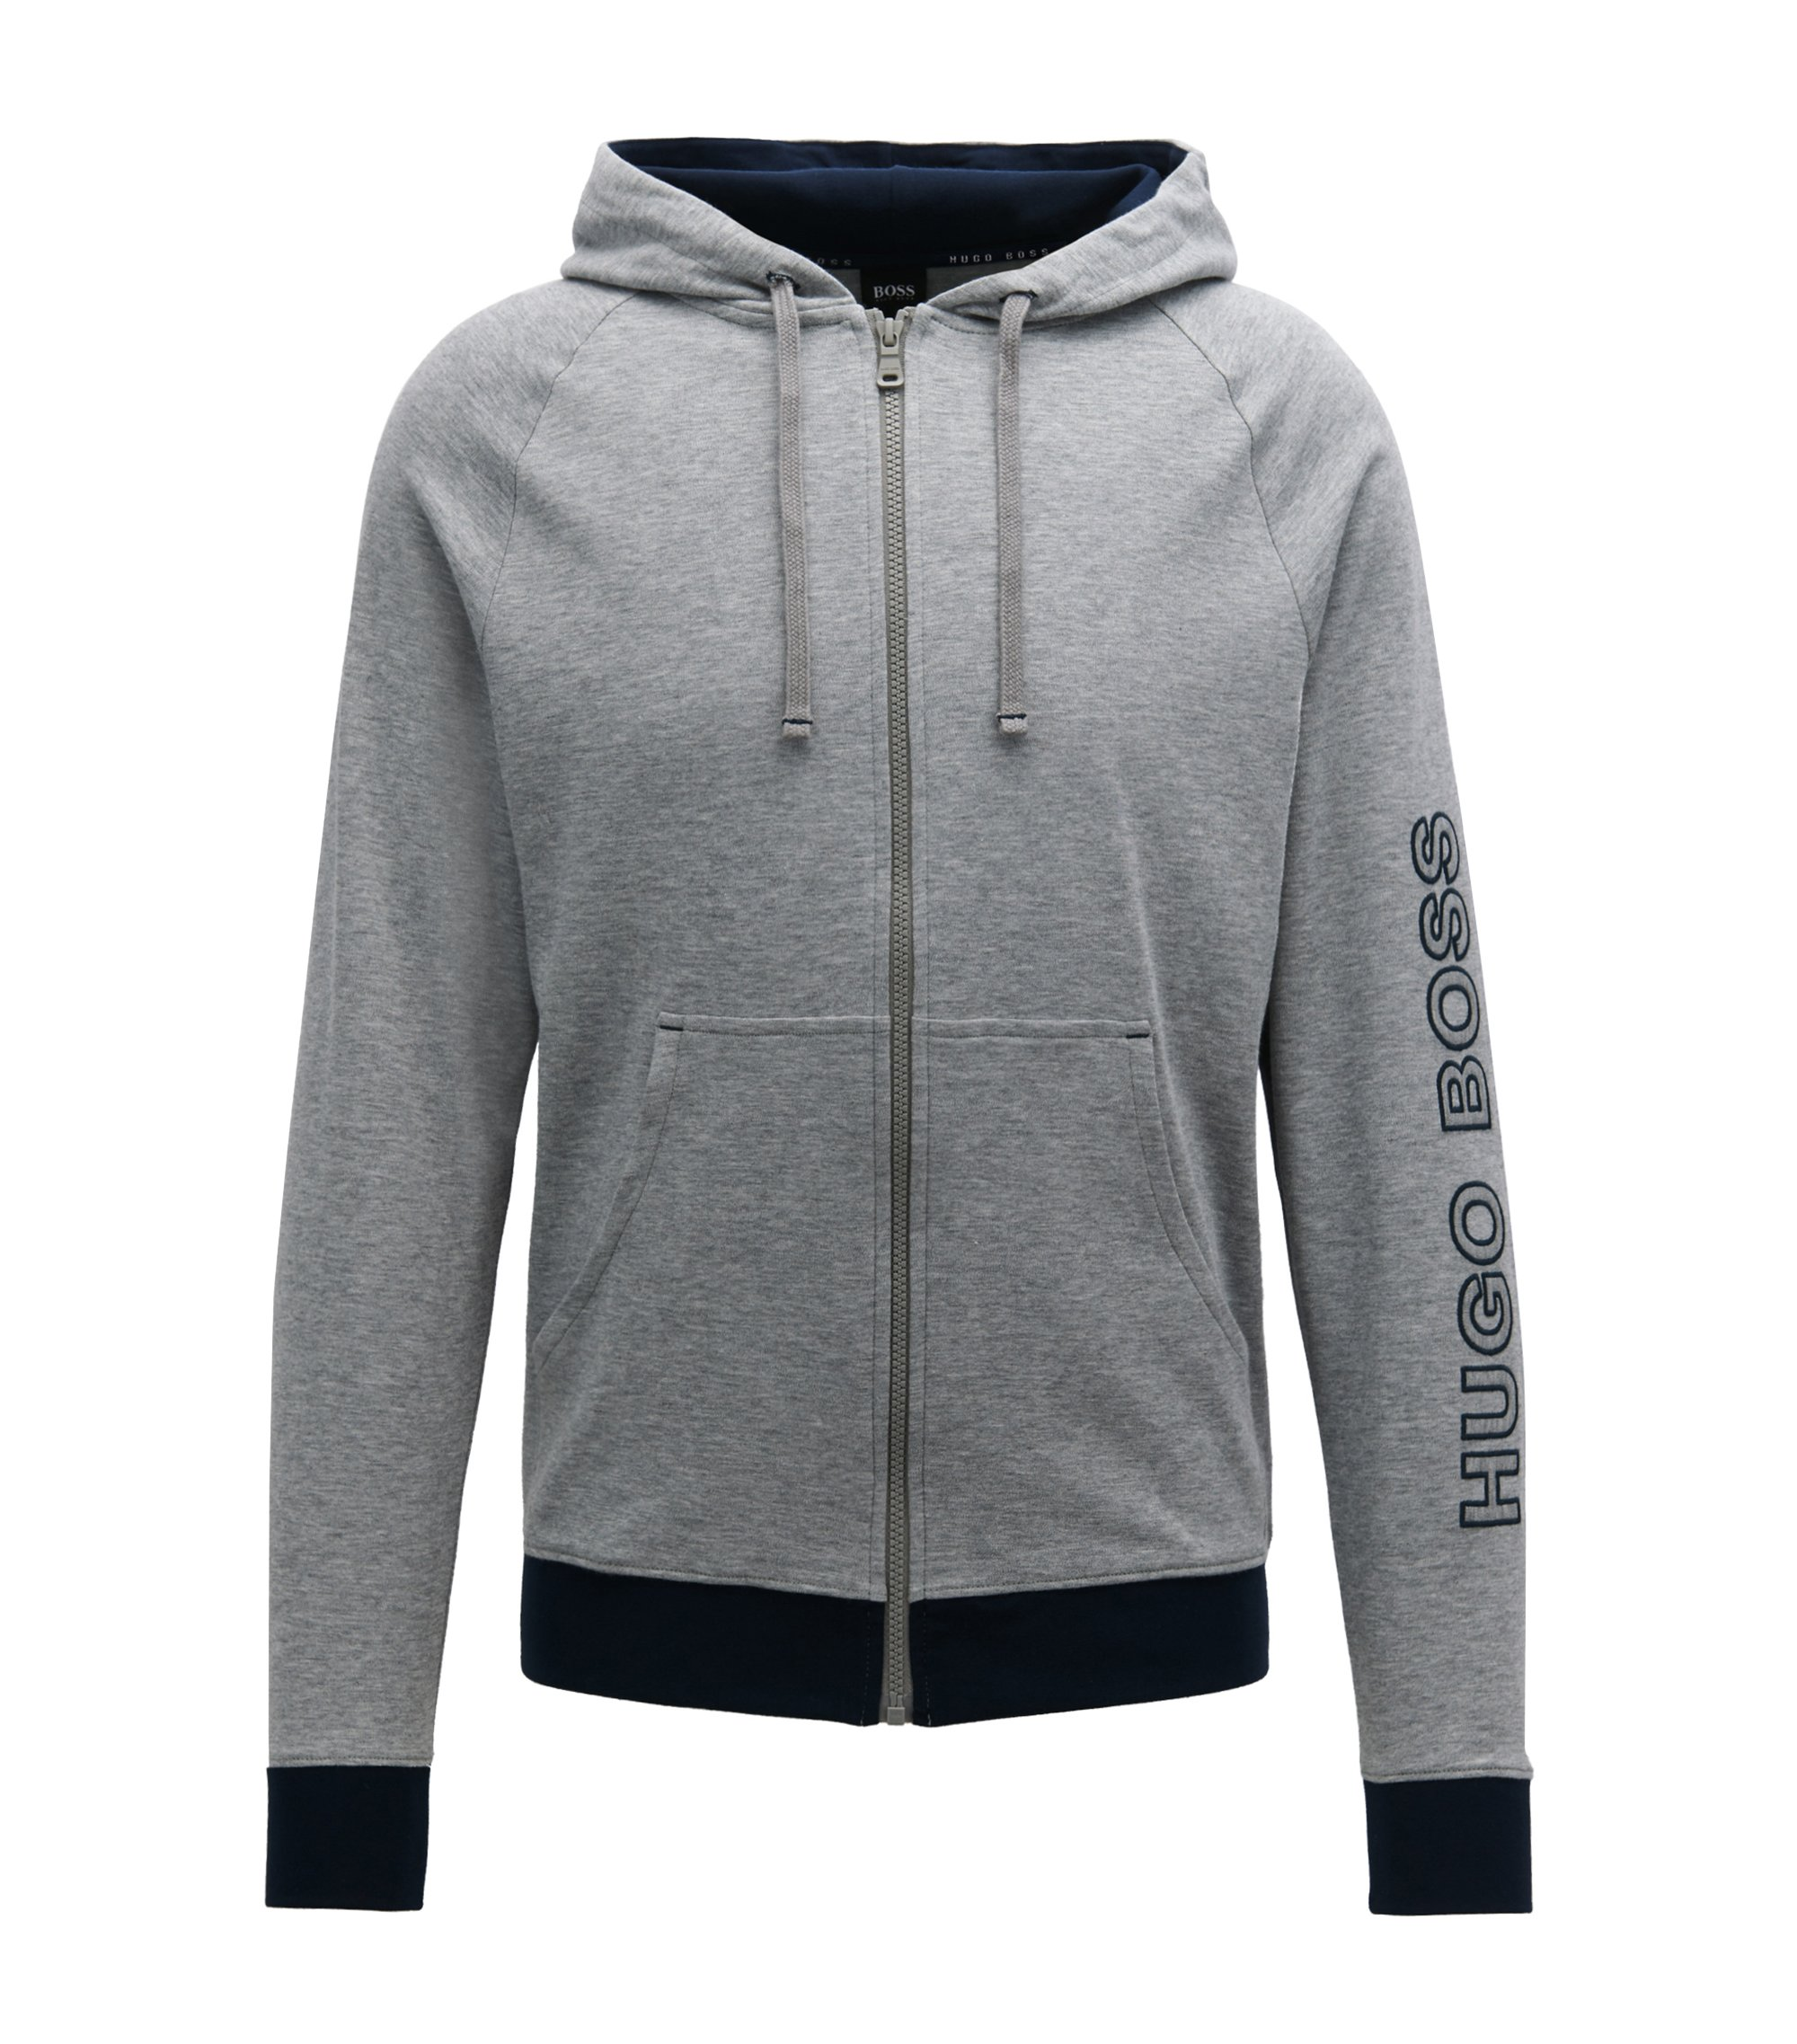 Hooded jacket in cotton with logo-embroidered sleeve, Grey